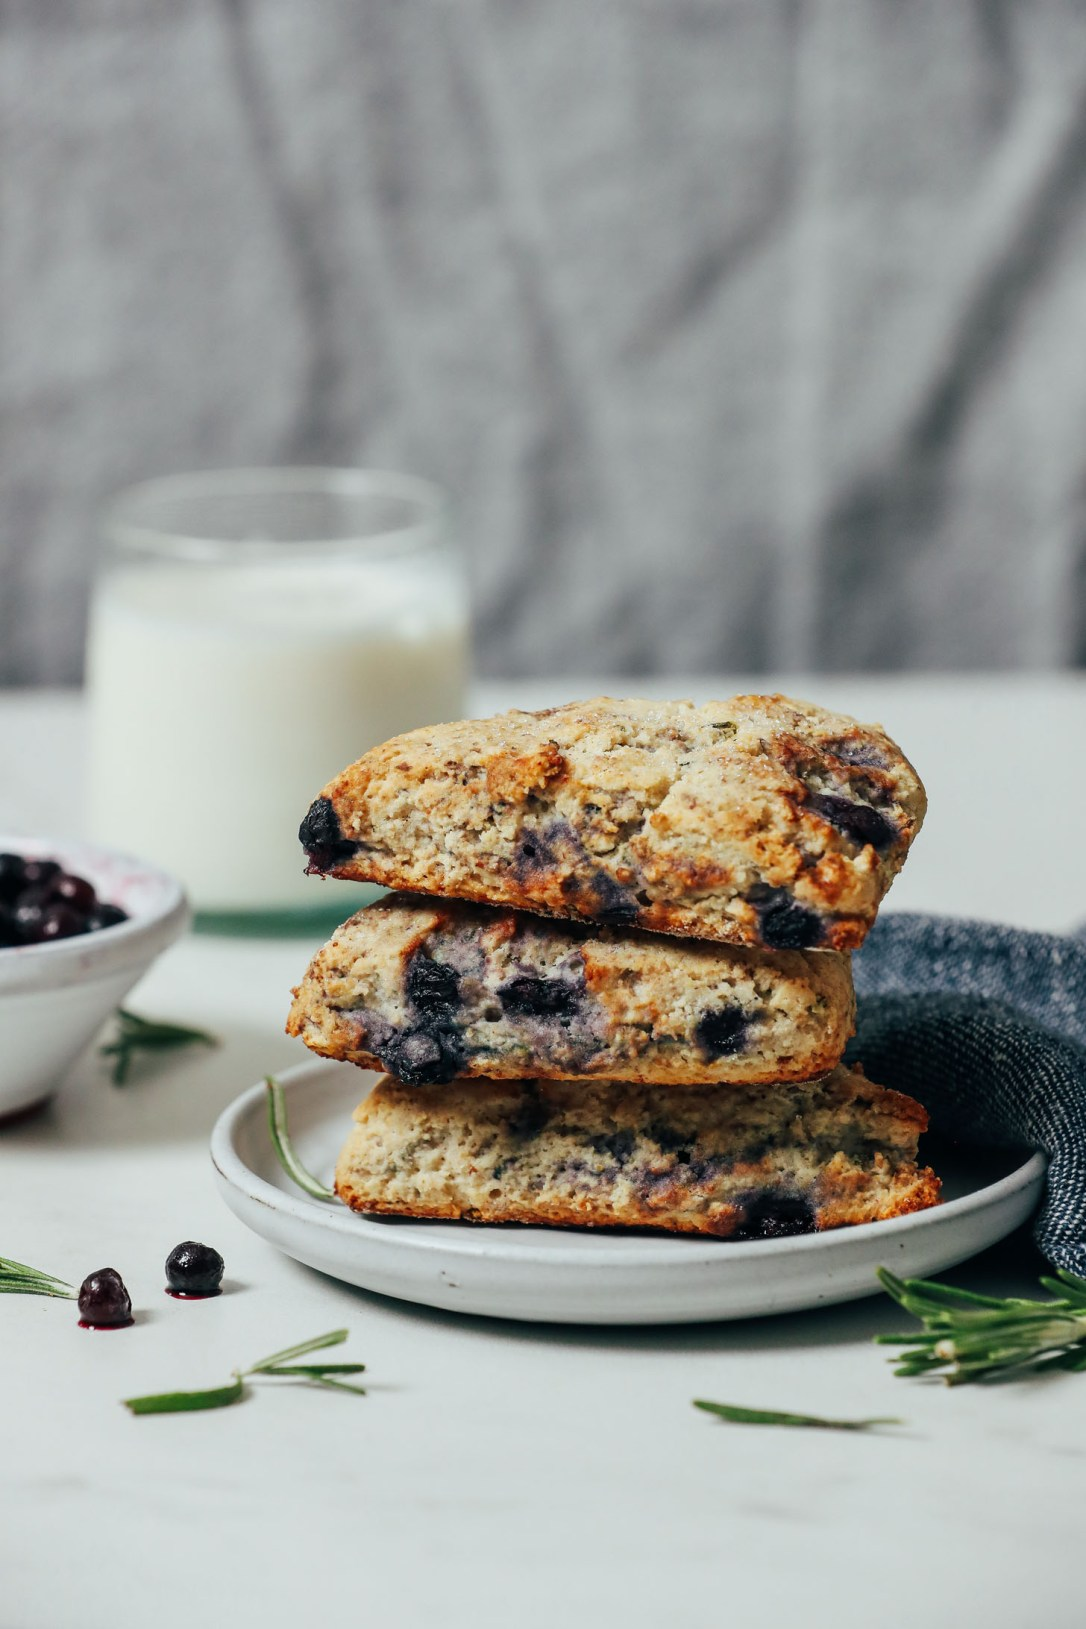 Plate with a stack of Blueberry Gluten Free Scones